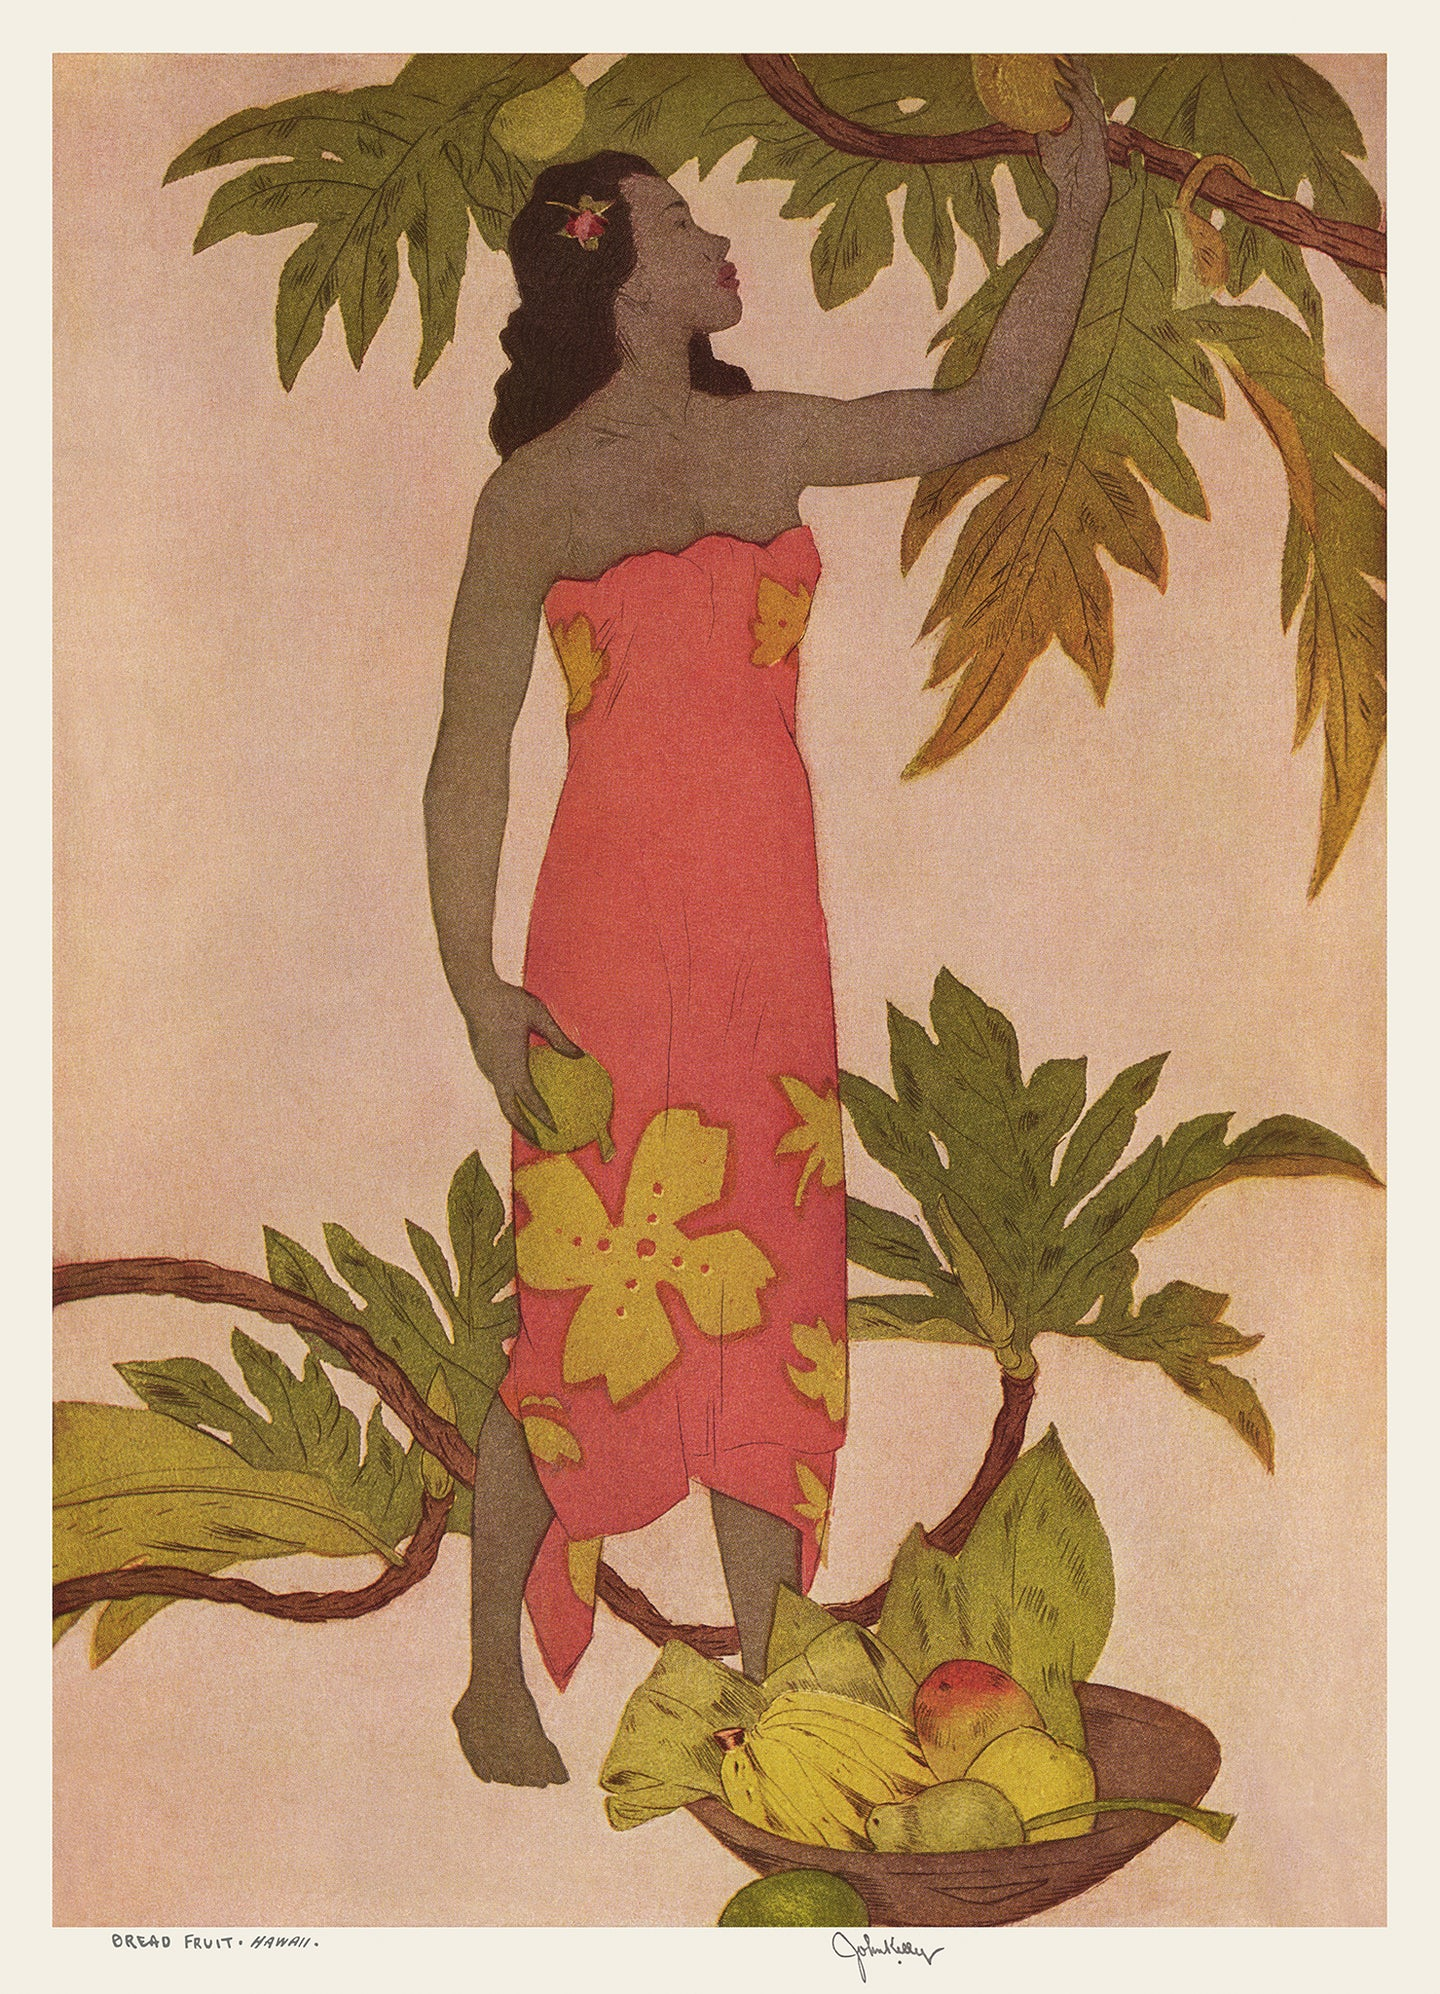 Bread Fruit, Hawaii, Matson Lines Menu Cover, 1947